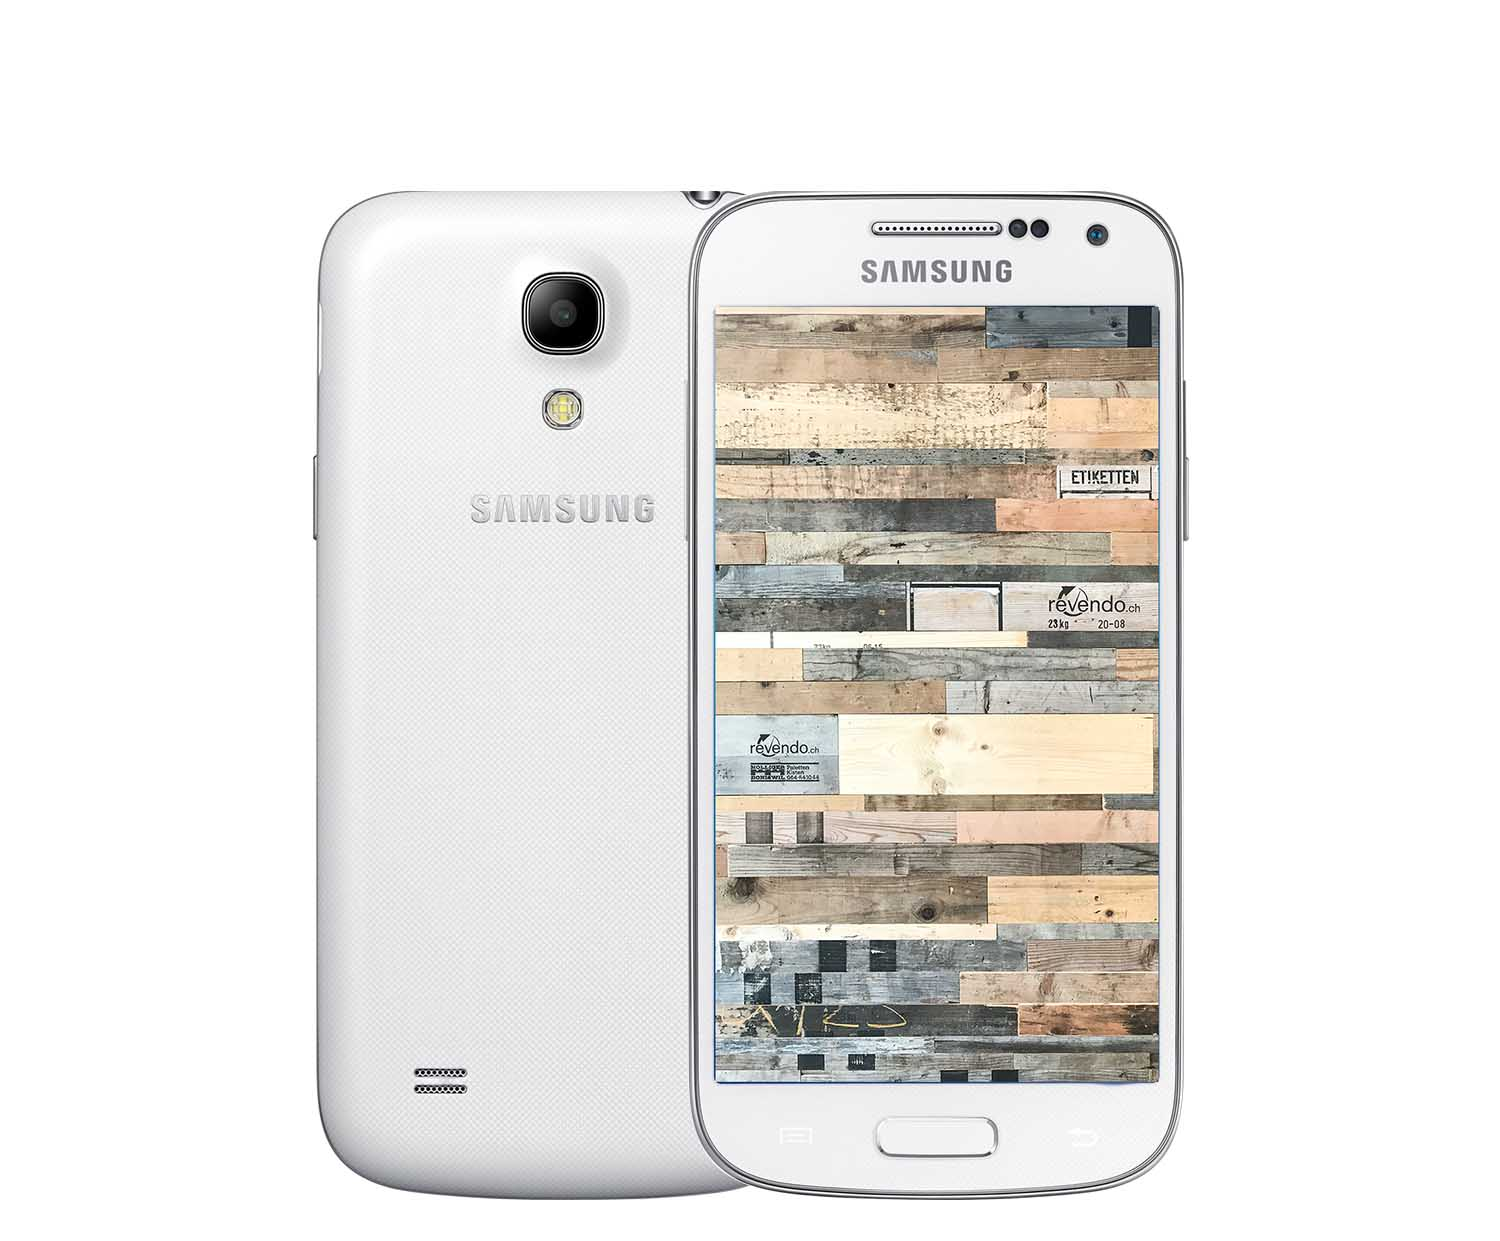 samsung galaxy s4 mini 8 gb weiss. Black Bedroom Furniture Sets. Home Design Ideas